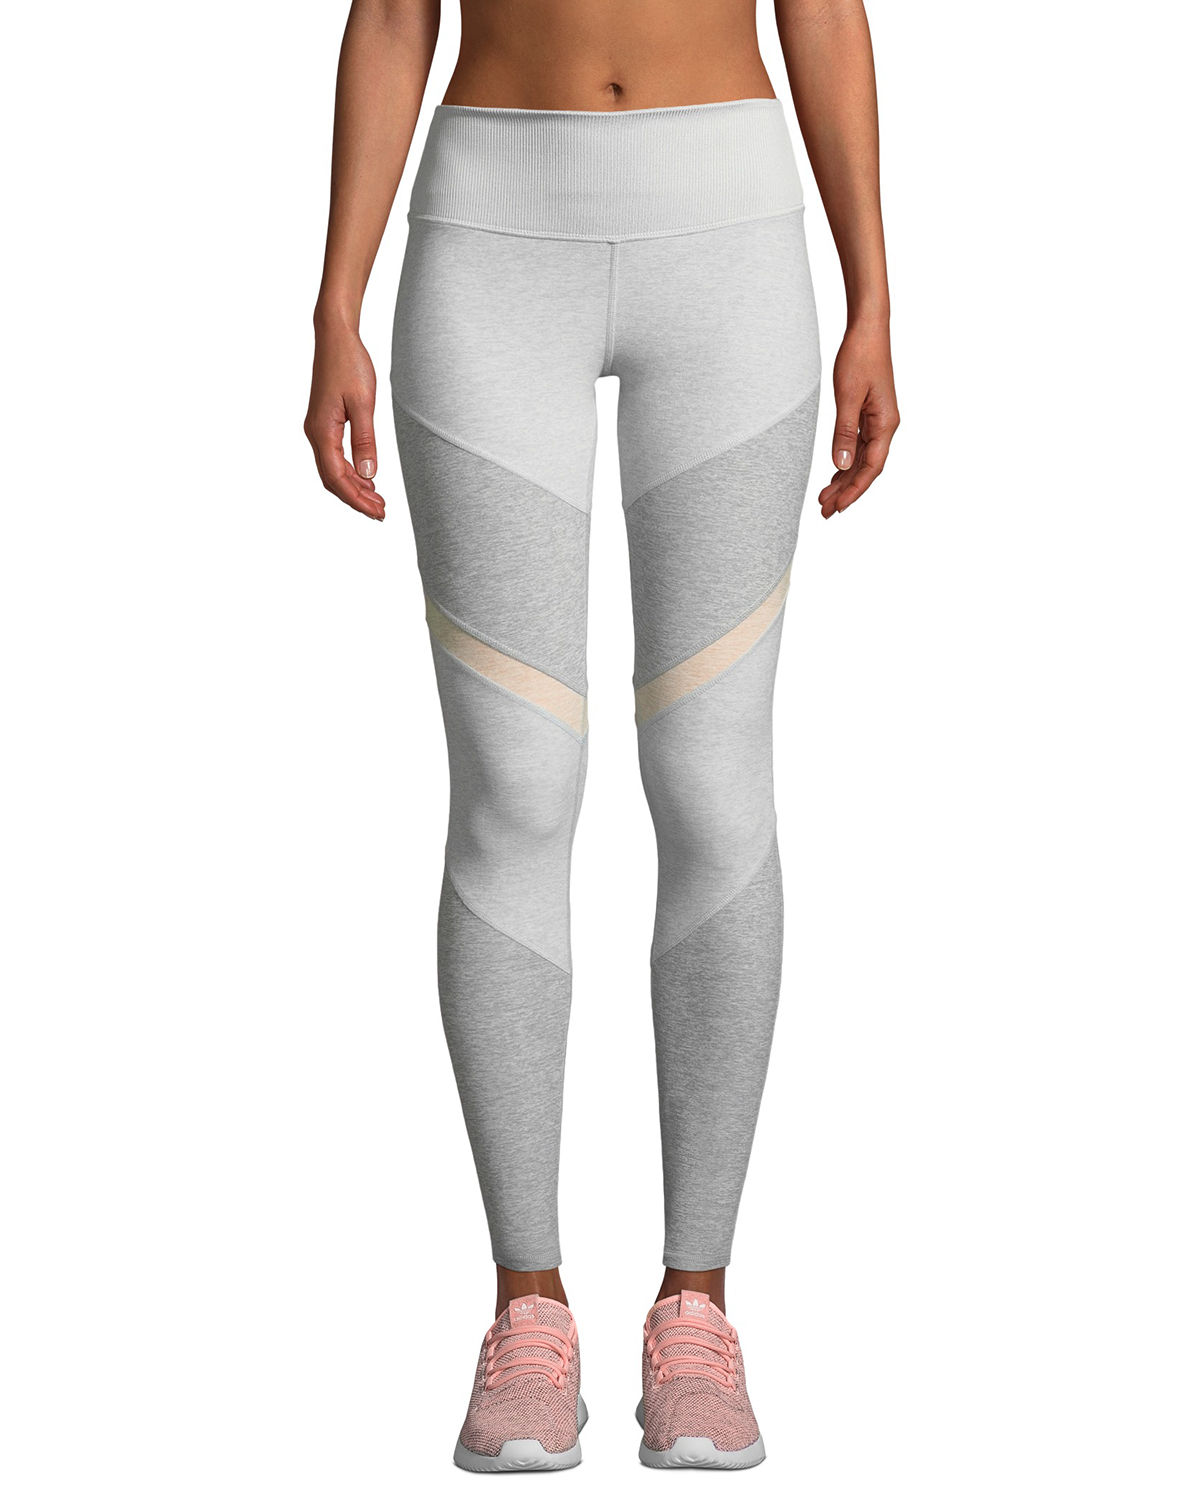 60a57119031b4c Alo Yoga Sheila High-Waist Mesh Panel Leggings | Neiman Marcus